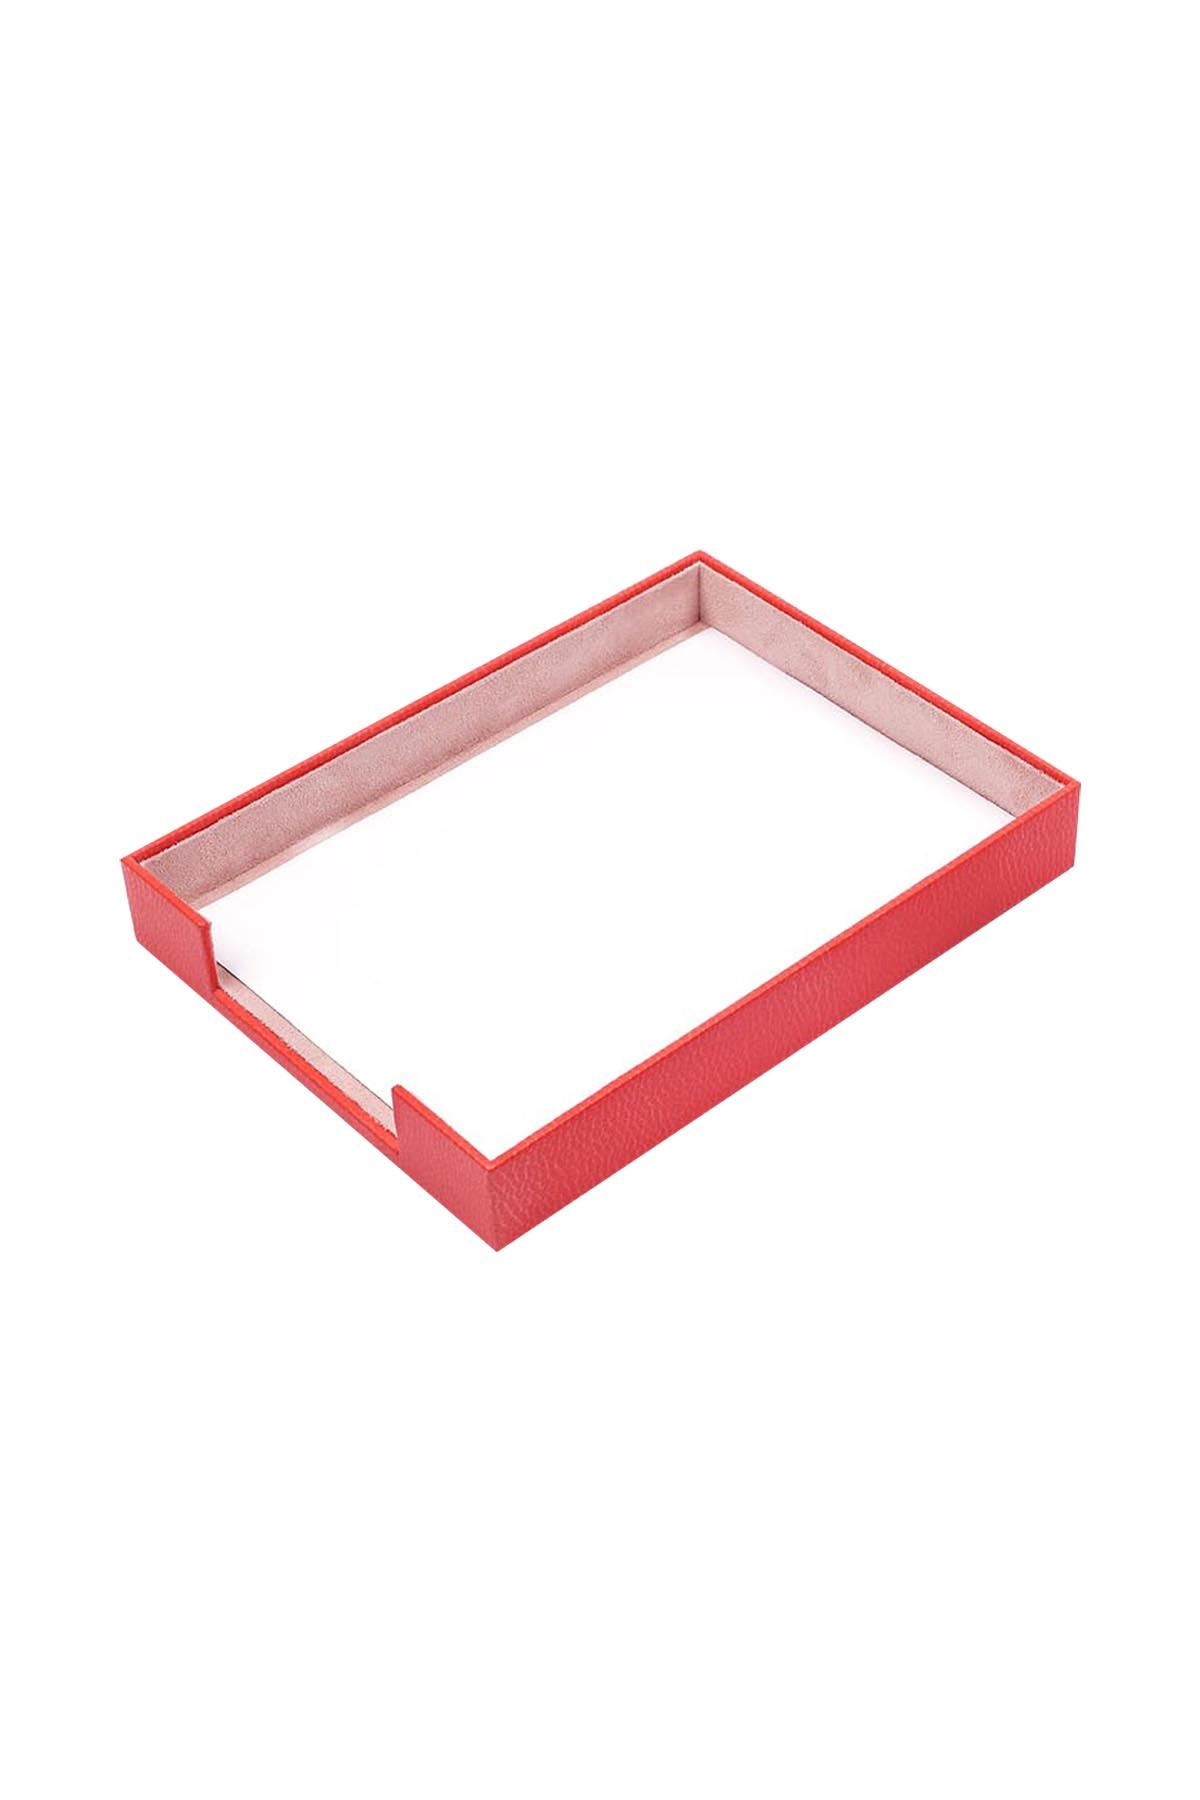 Document Tray Red| Leather Document Organizer | Leather Tray | Leather Organizer | Document Shelf